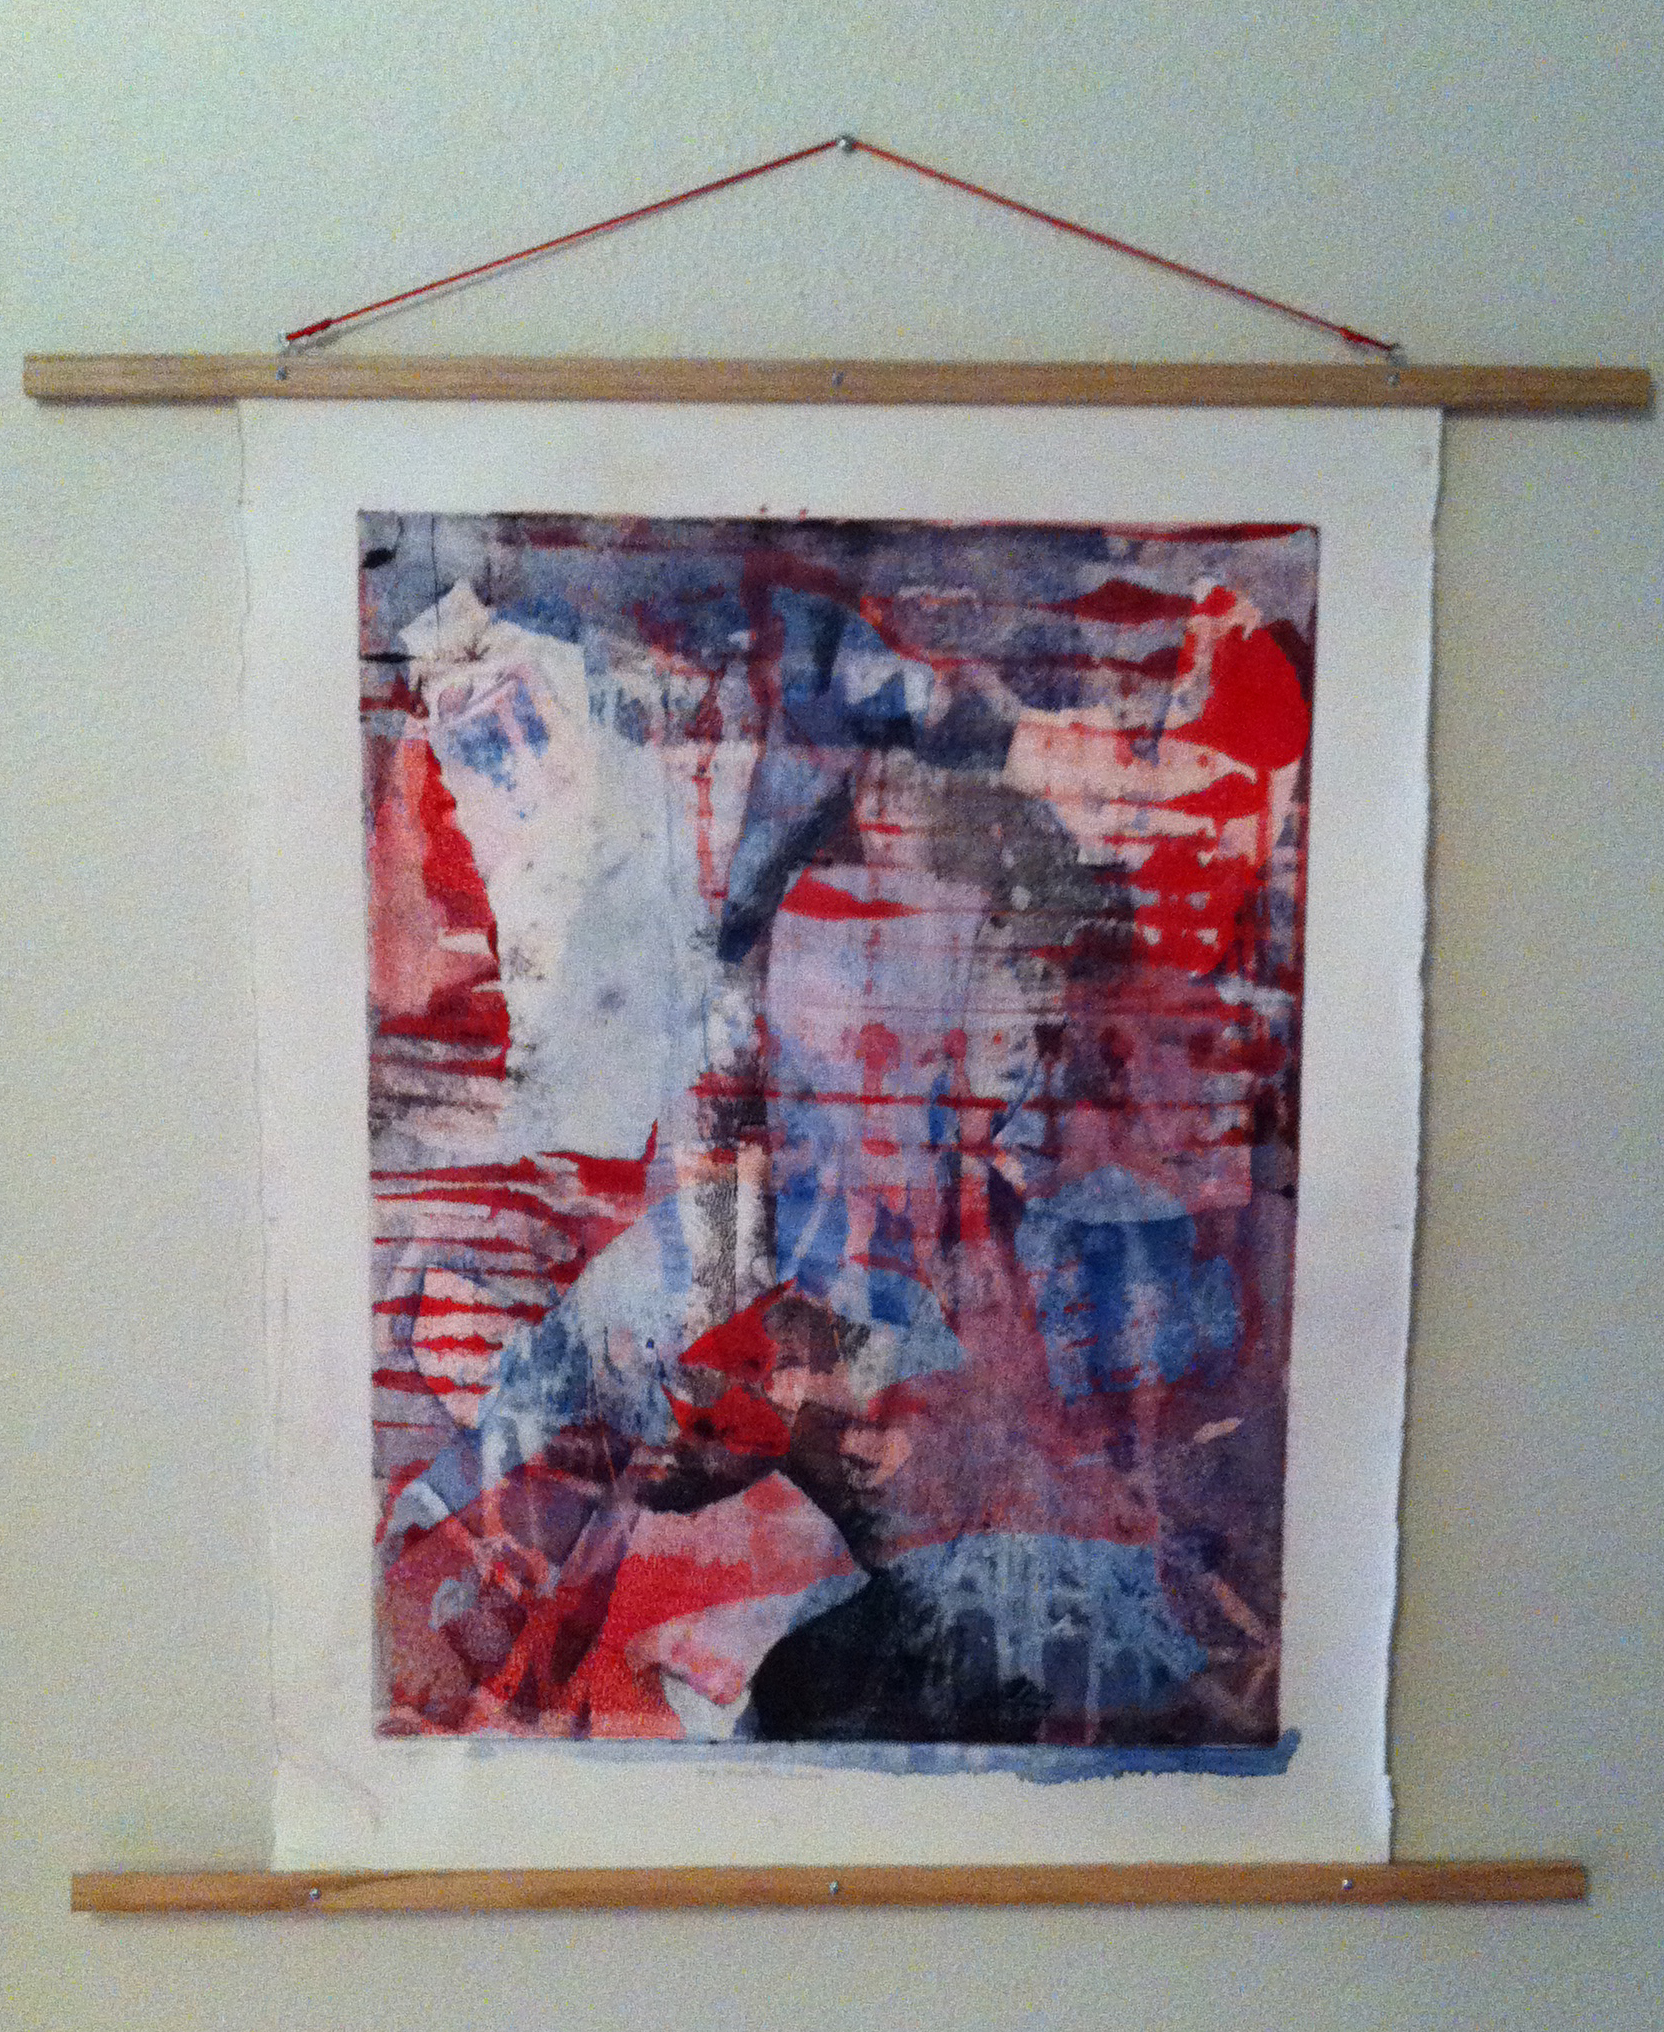 a monoprint with red, white, and blue colors in abstraction